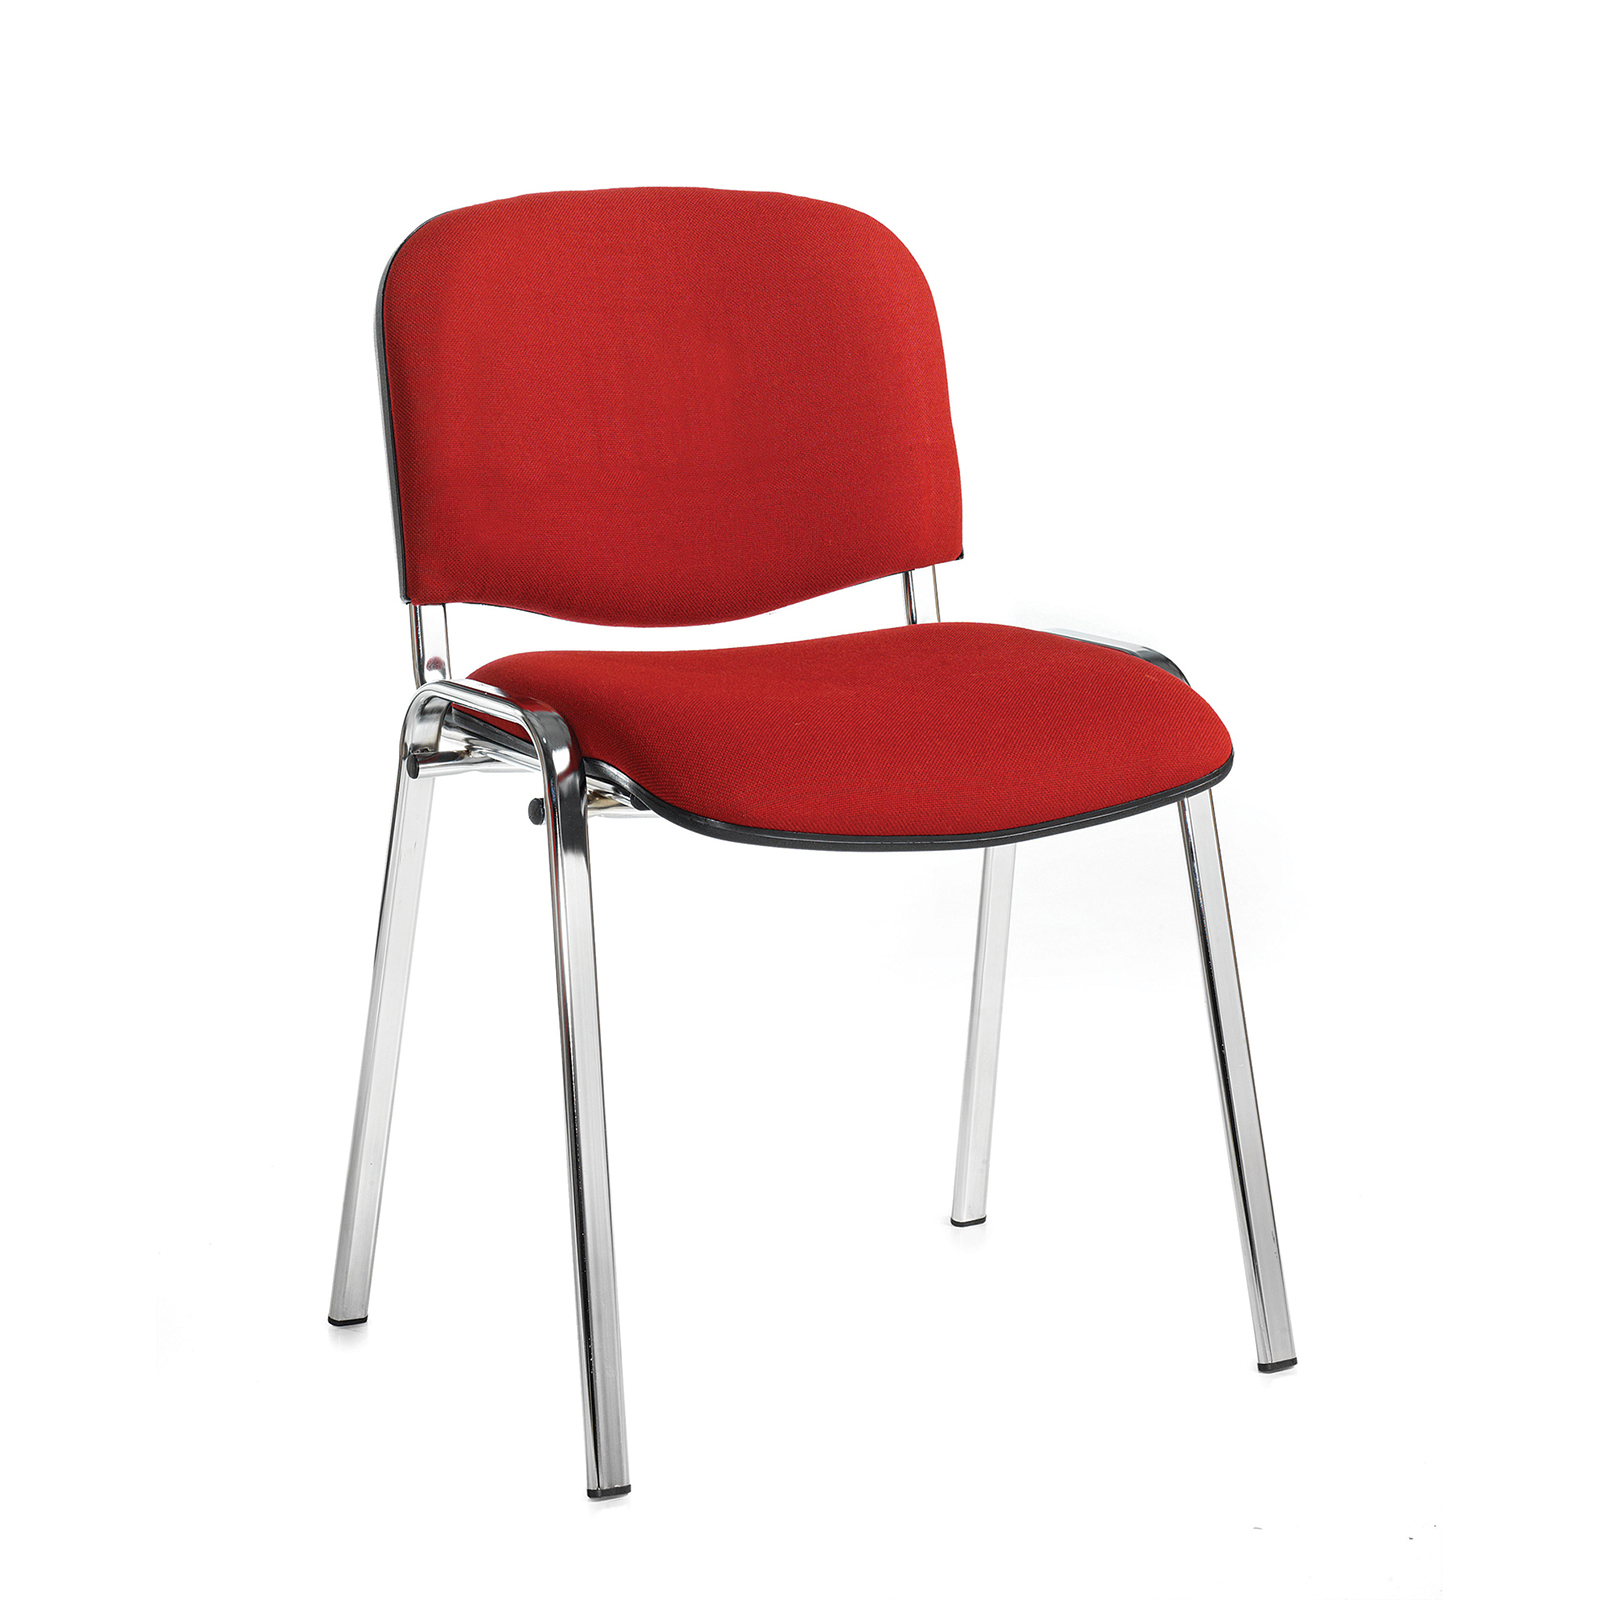 Taurus meeting room stackable chair with chrome frame and no arms - burgundy